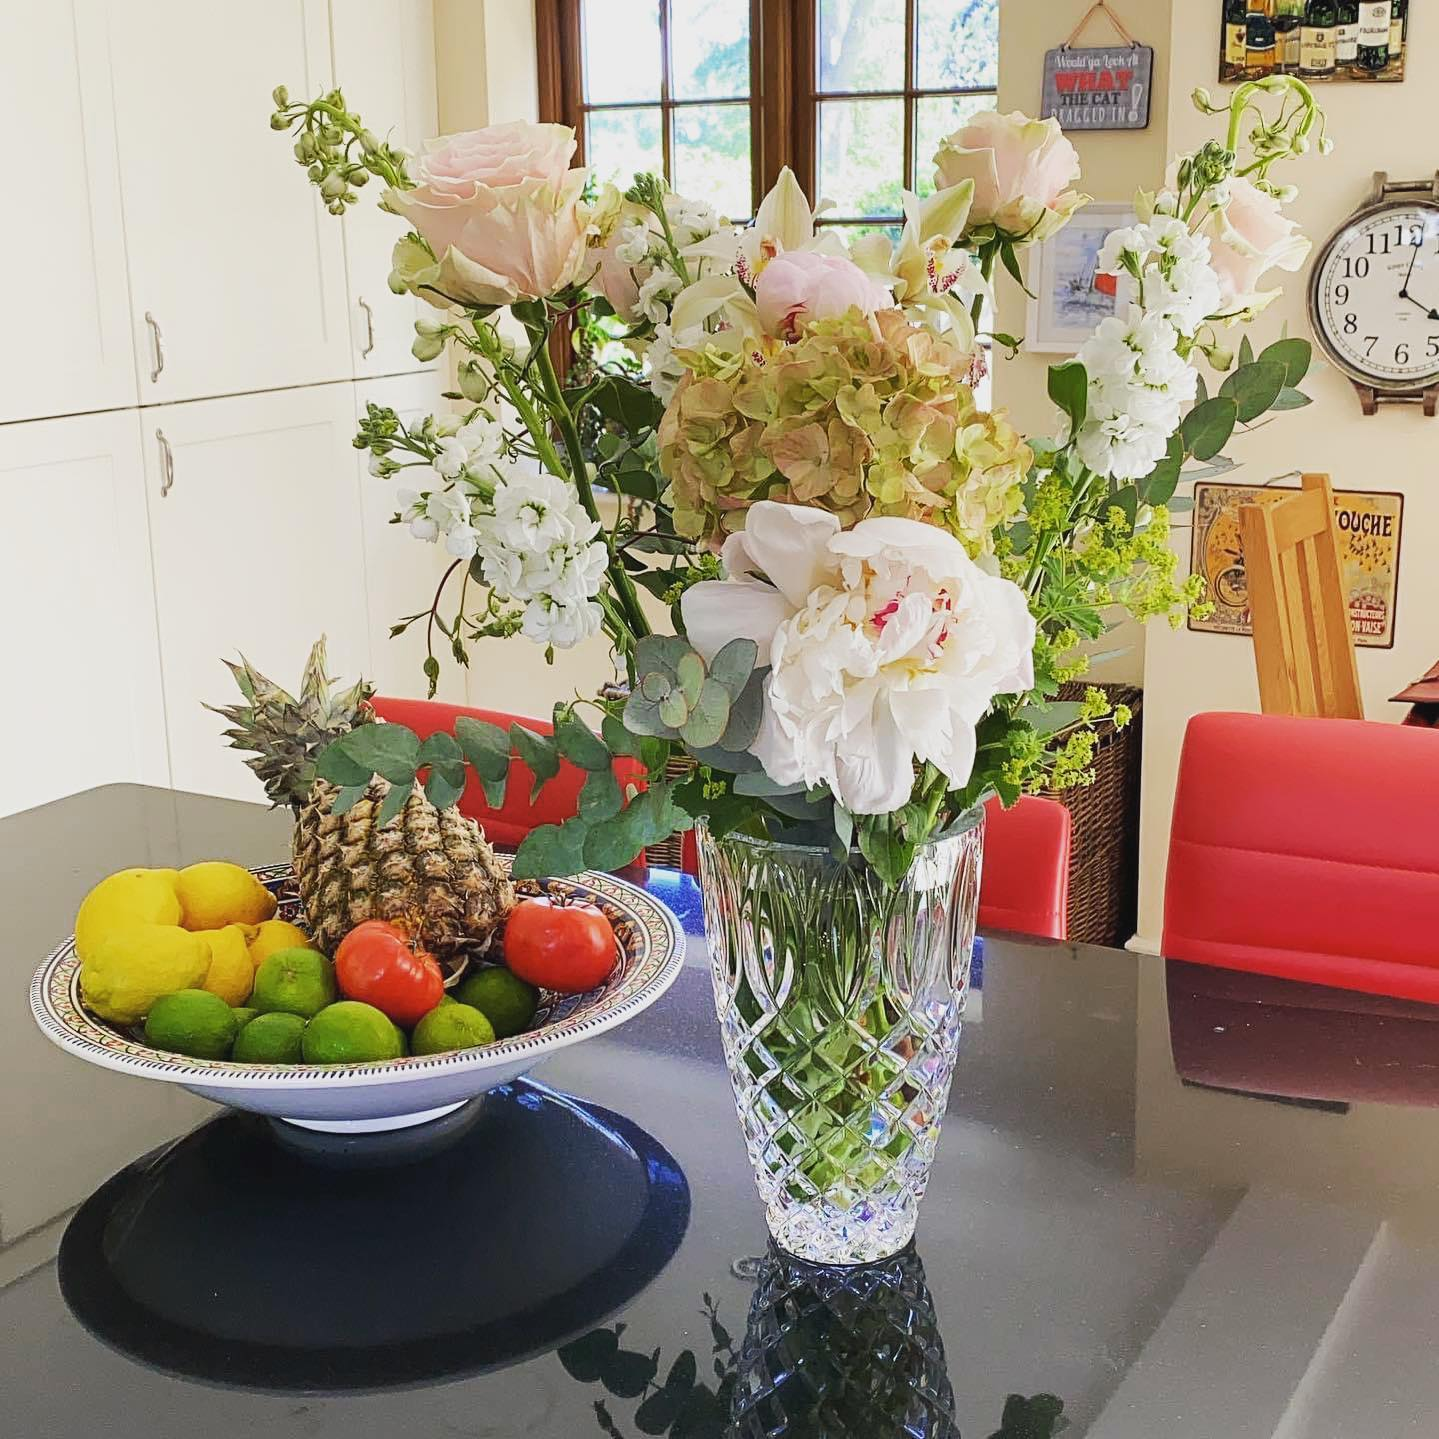 I love when we have flowers in the house.